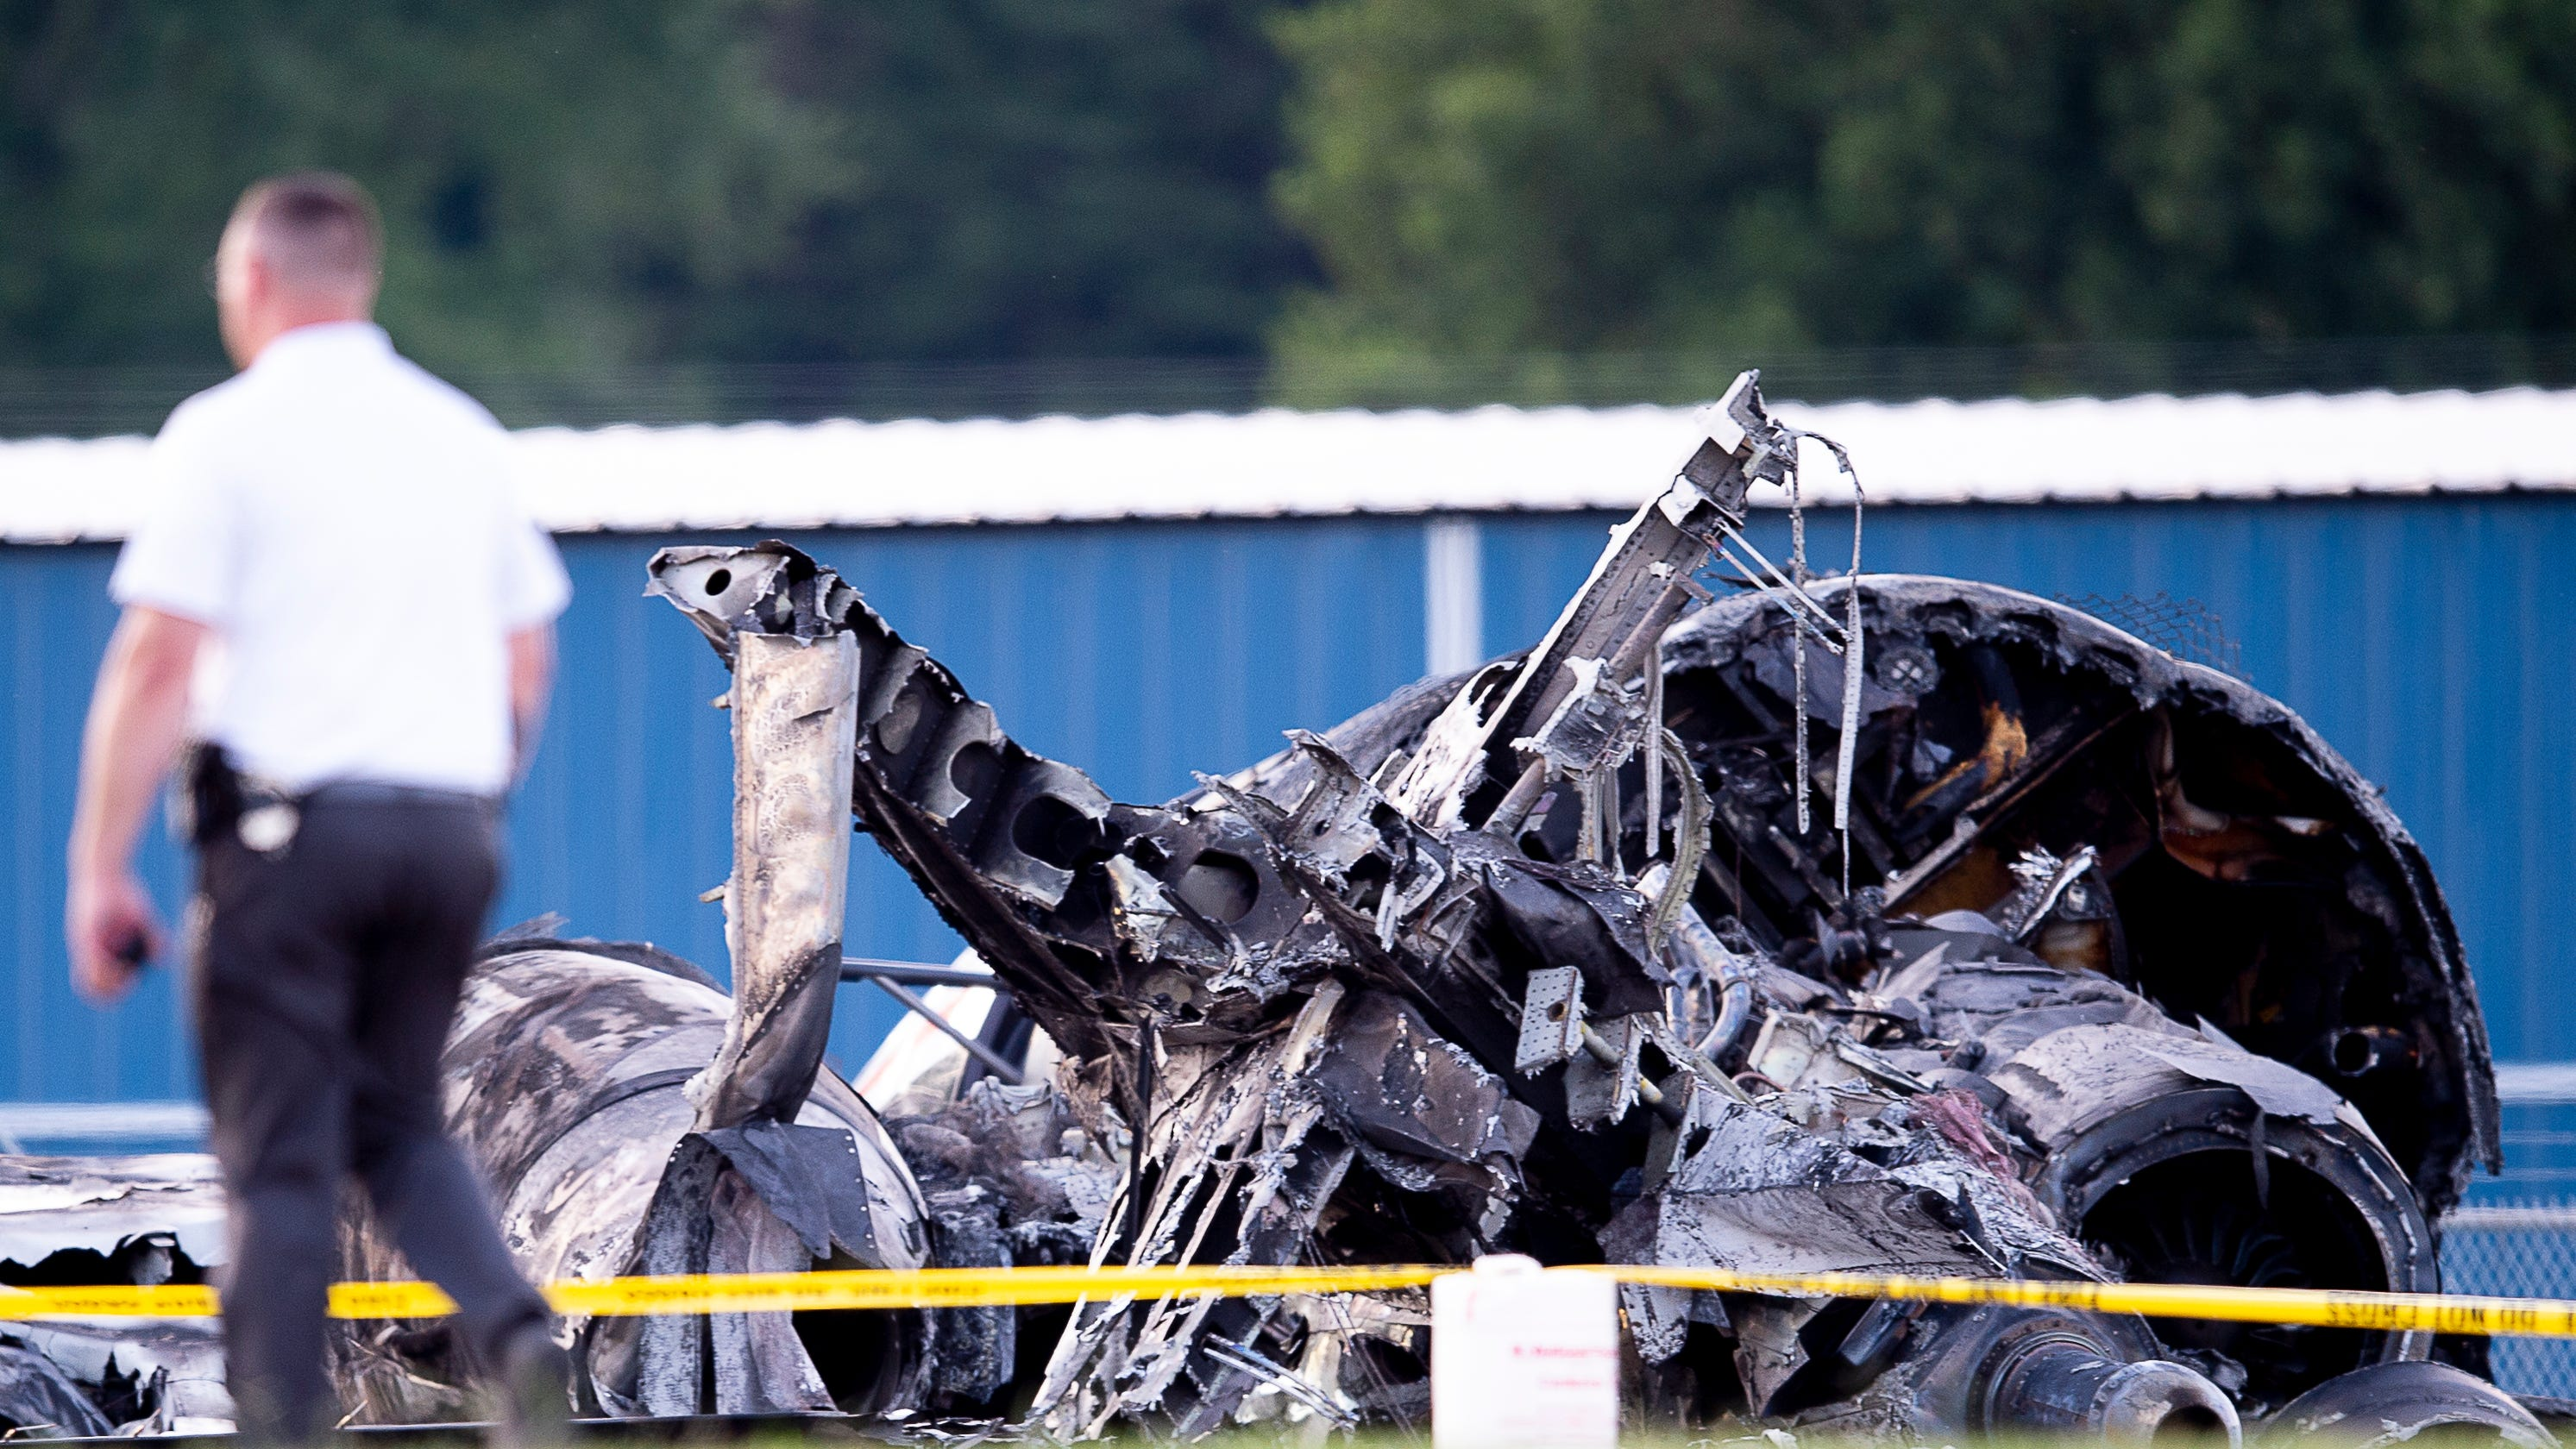 Dale Earnhardt Jr  plane crash in Tennessee: What we know